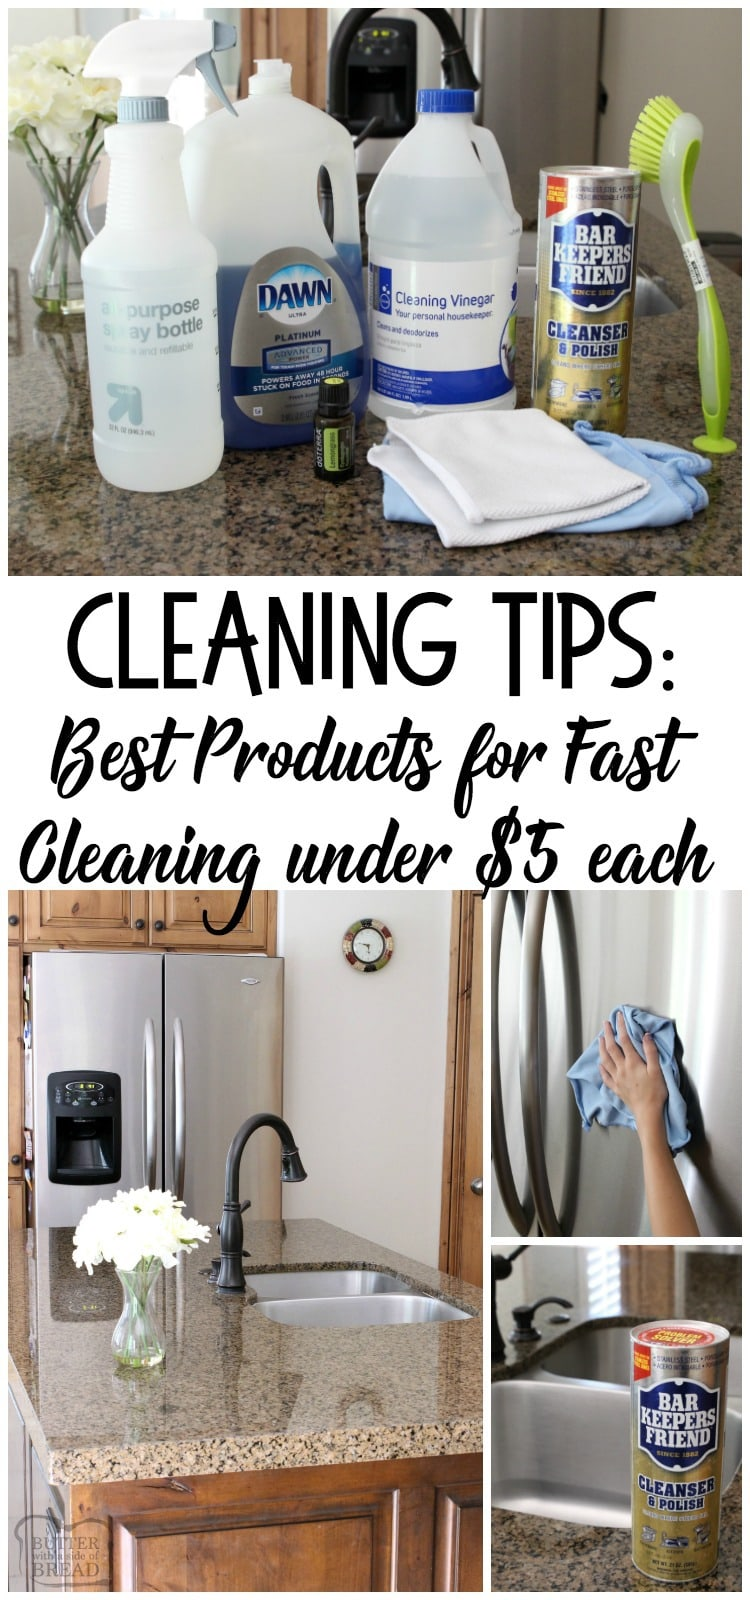 Cleaning tips and a list of best cleaning products that help your home stay clean and smell fresh. Featuring five of my favorite cleaning tools for under $5 each! Fast cleaning tips from Butter With A Side of Bread